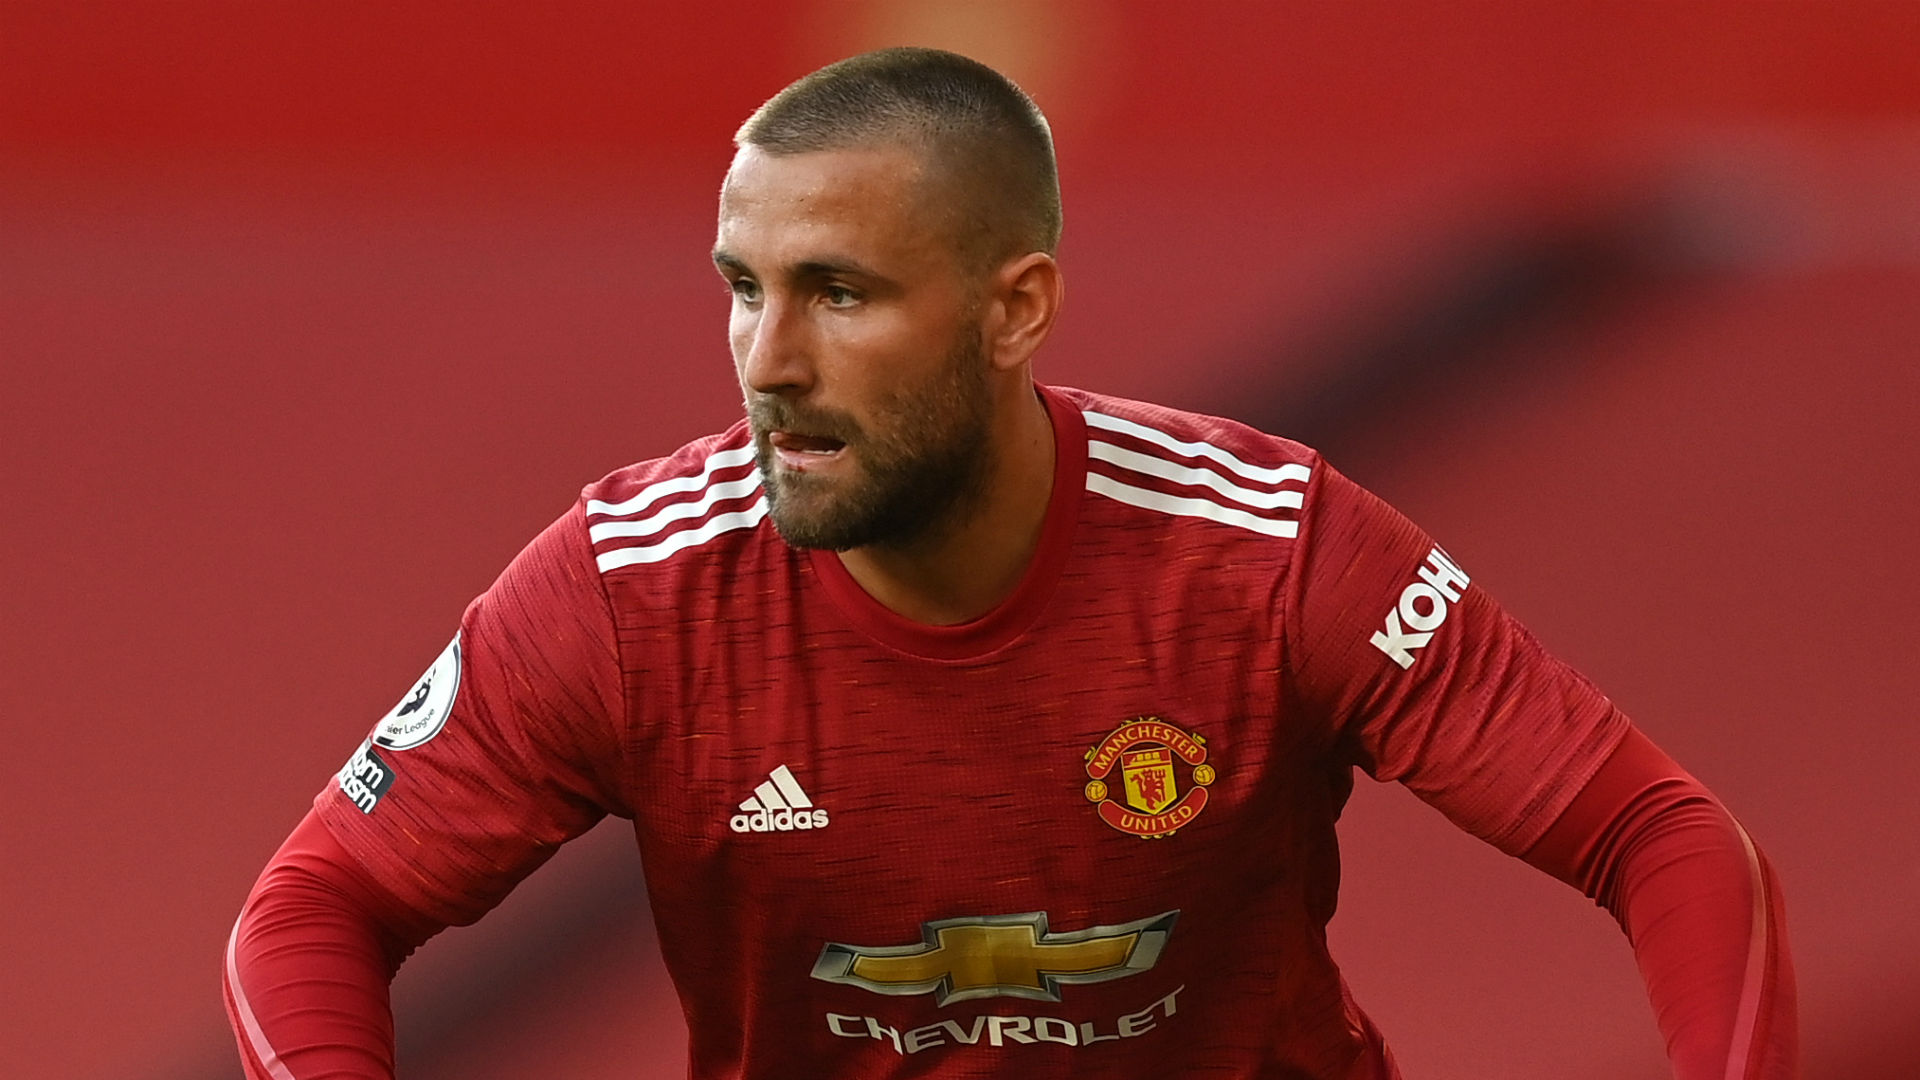 'I know what's needed' - Shaw happy to play mentor role in Manchester United squad